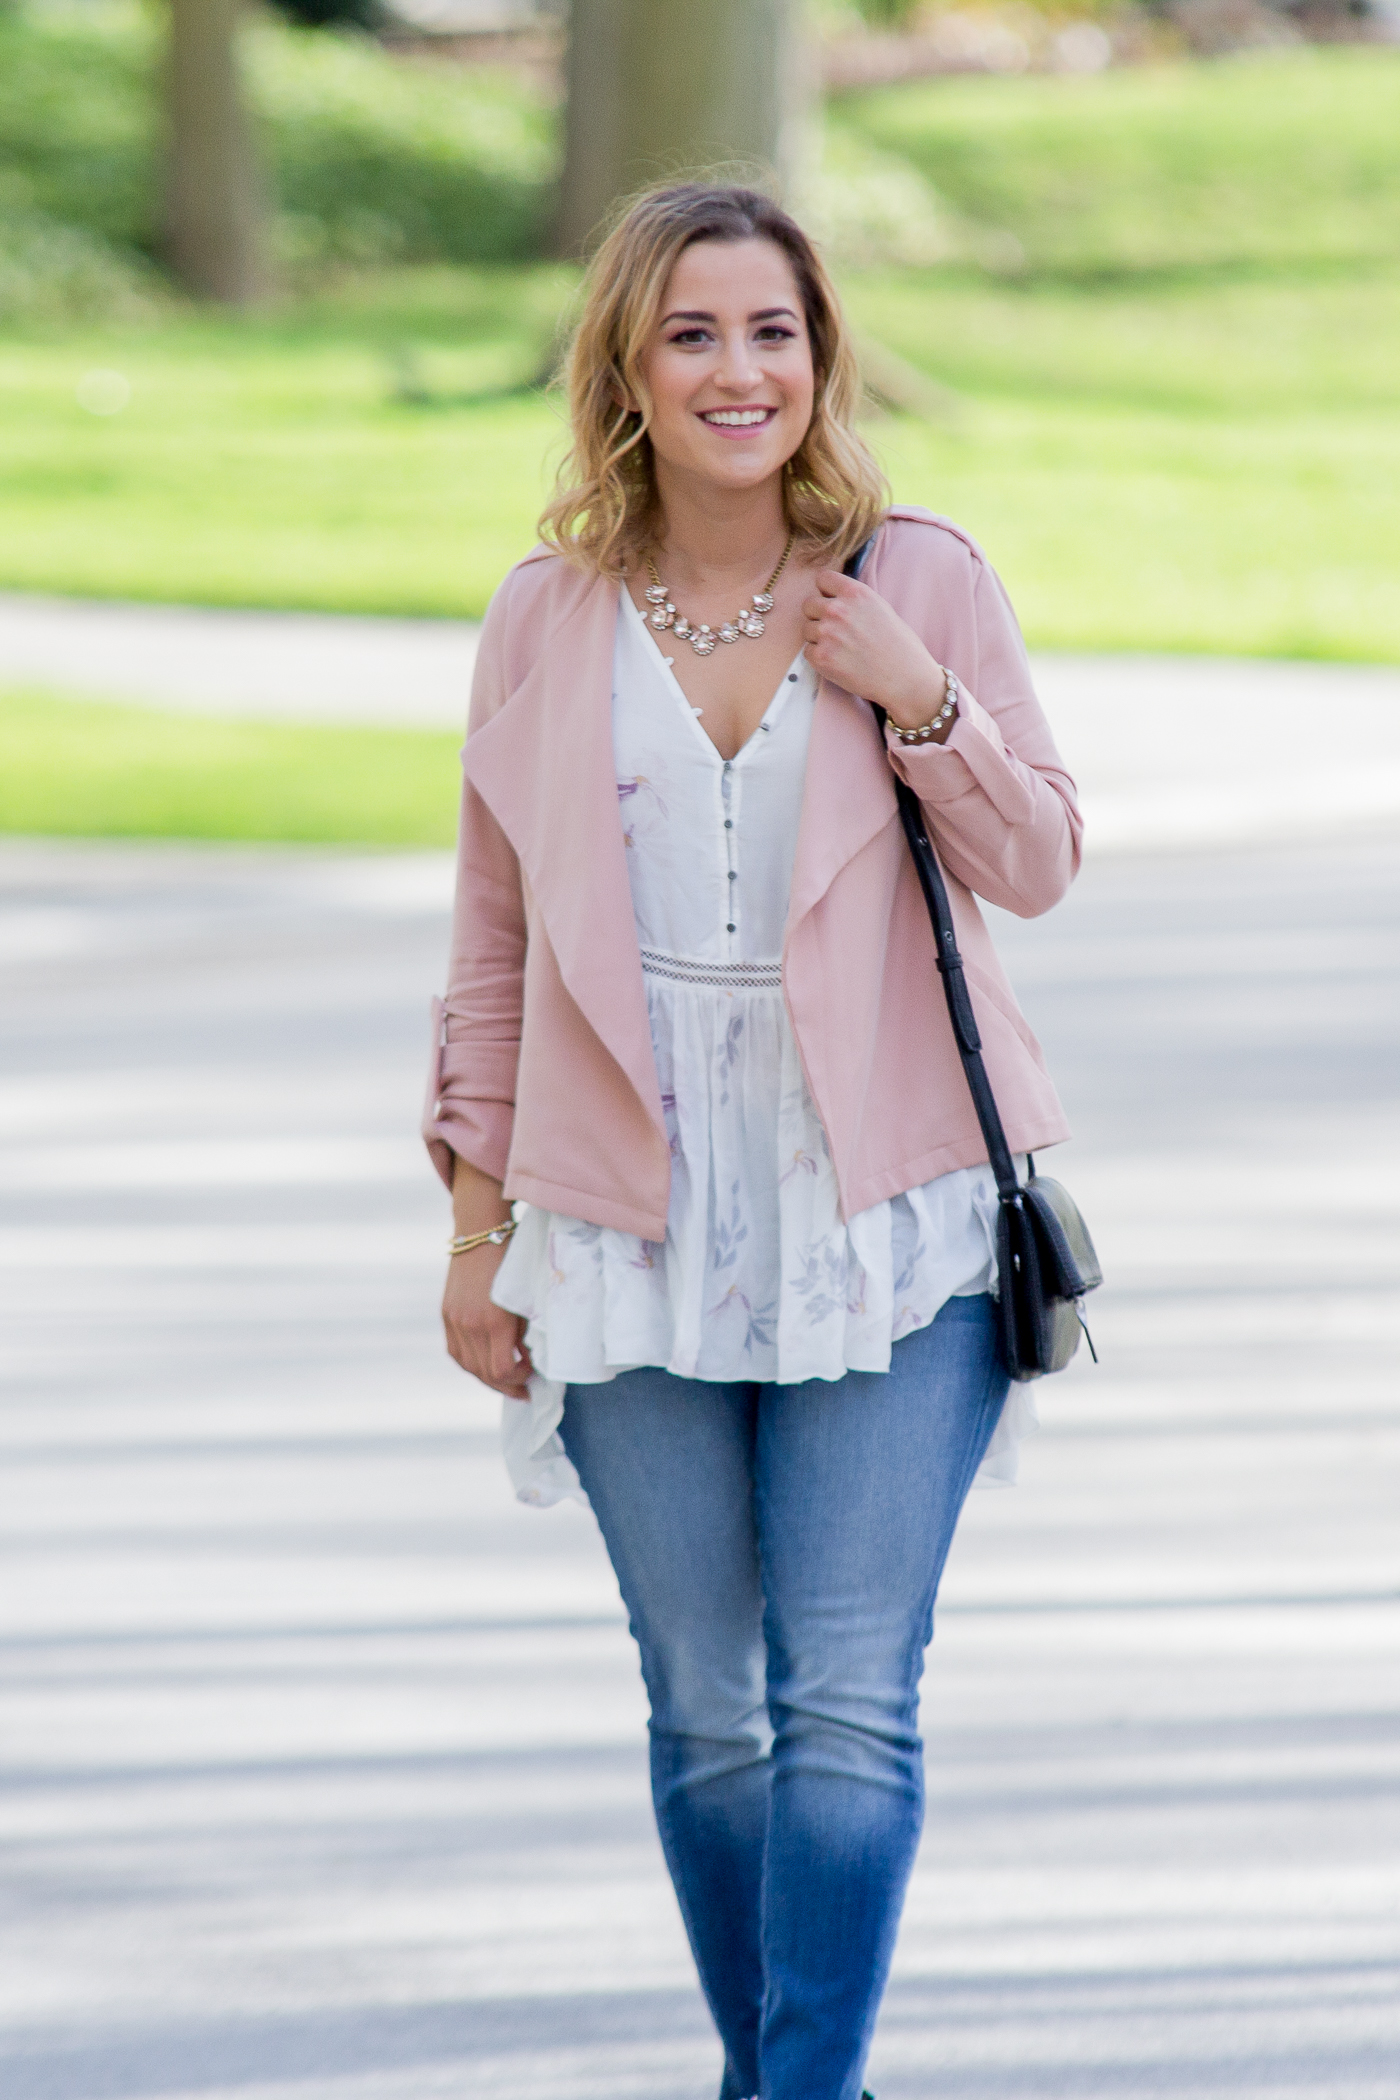 Casual summer outfit, with a pastel pink jacket, printed blouse and skinny jeans